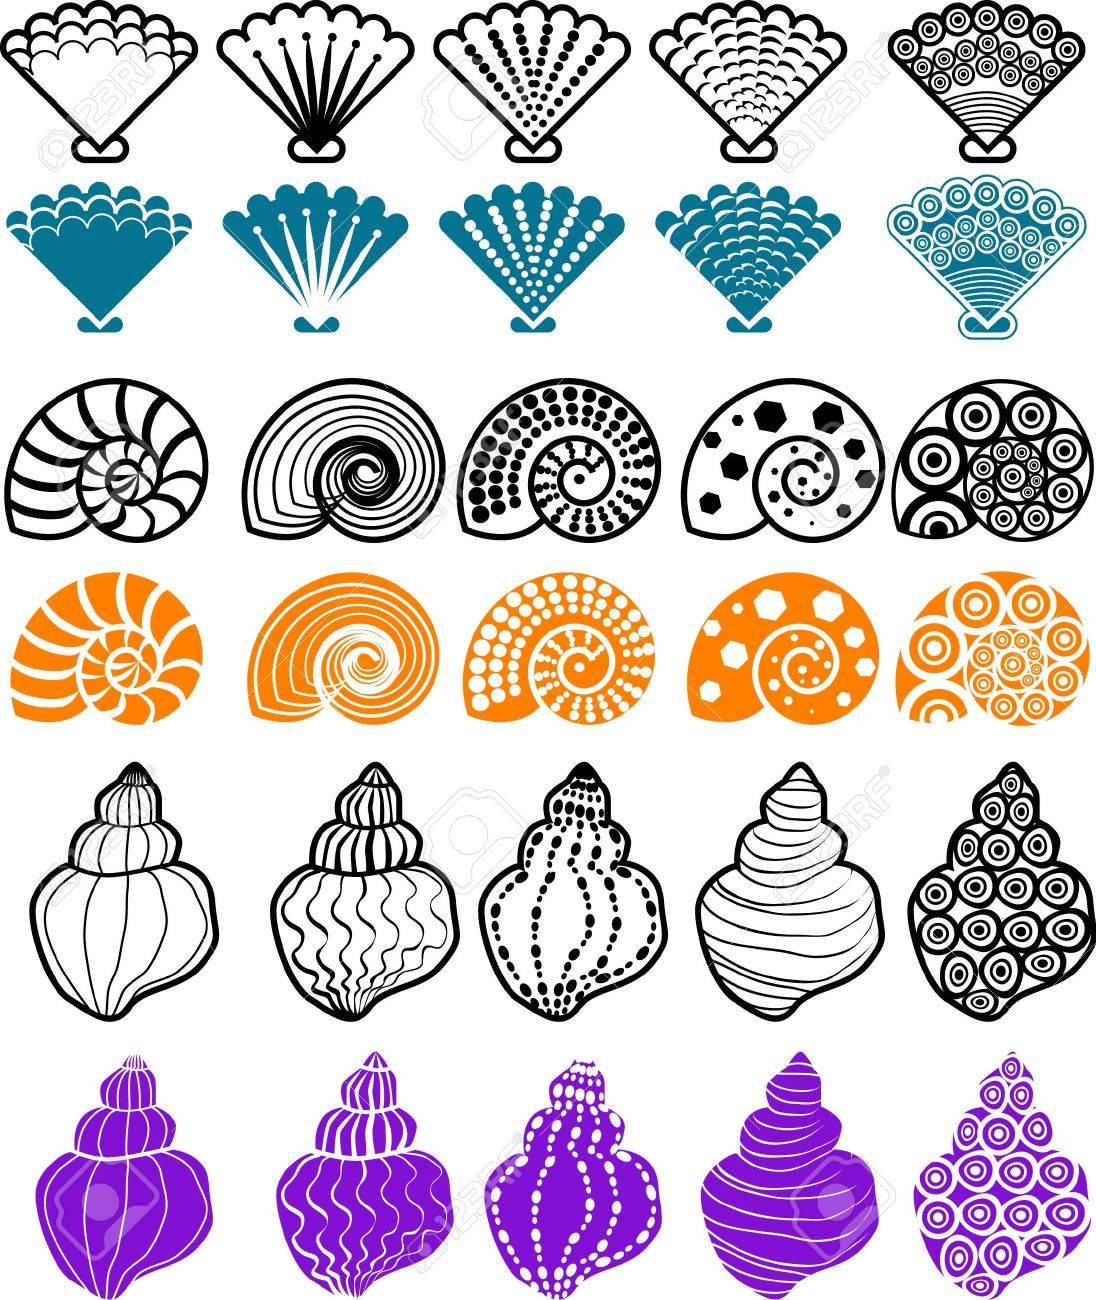 vector illustration for shell pattern design element. Stock Vector - 2438132